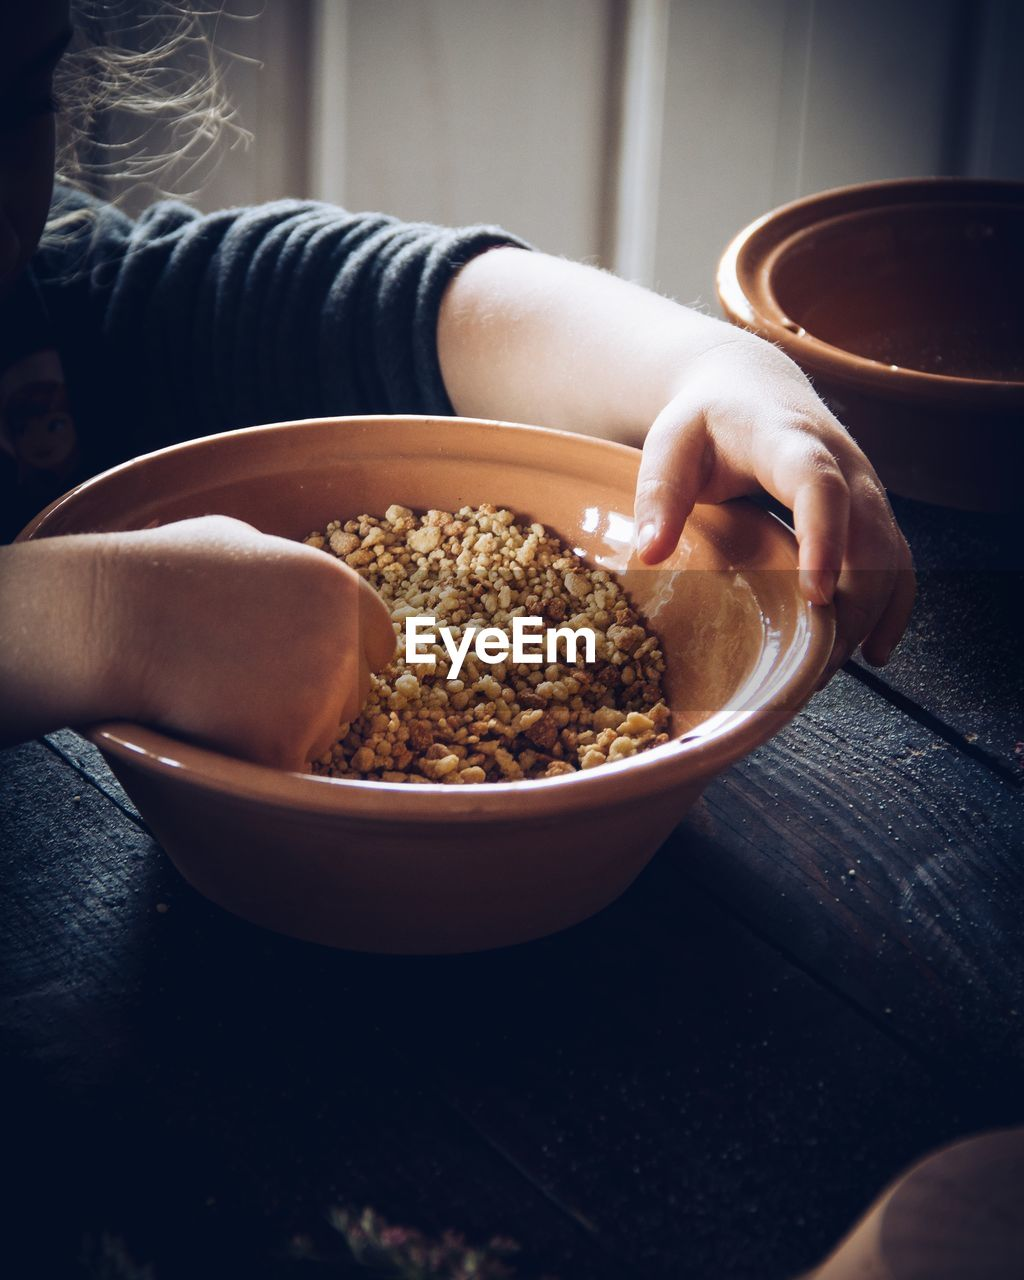 food and drink, one person, bowl, food, real people, human hand, freshness, human body part, hand, lifestyles, holding, table, indoors, women, body part, healthy eating, unrecognizable person, wellbeing, midsection, finger, breakfast, snack